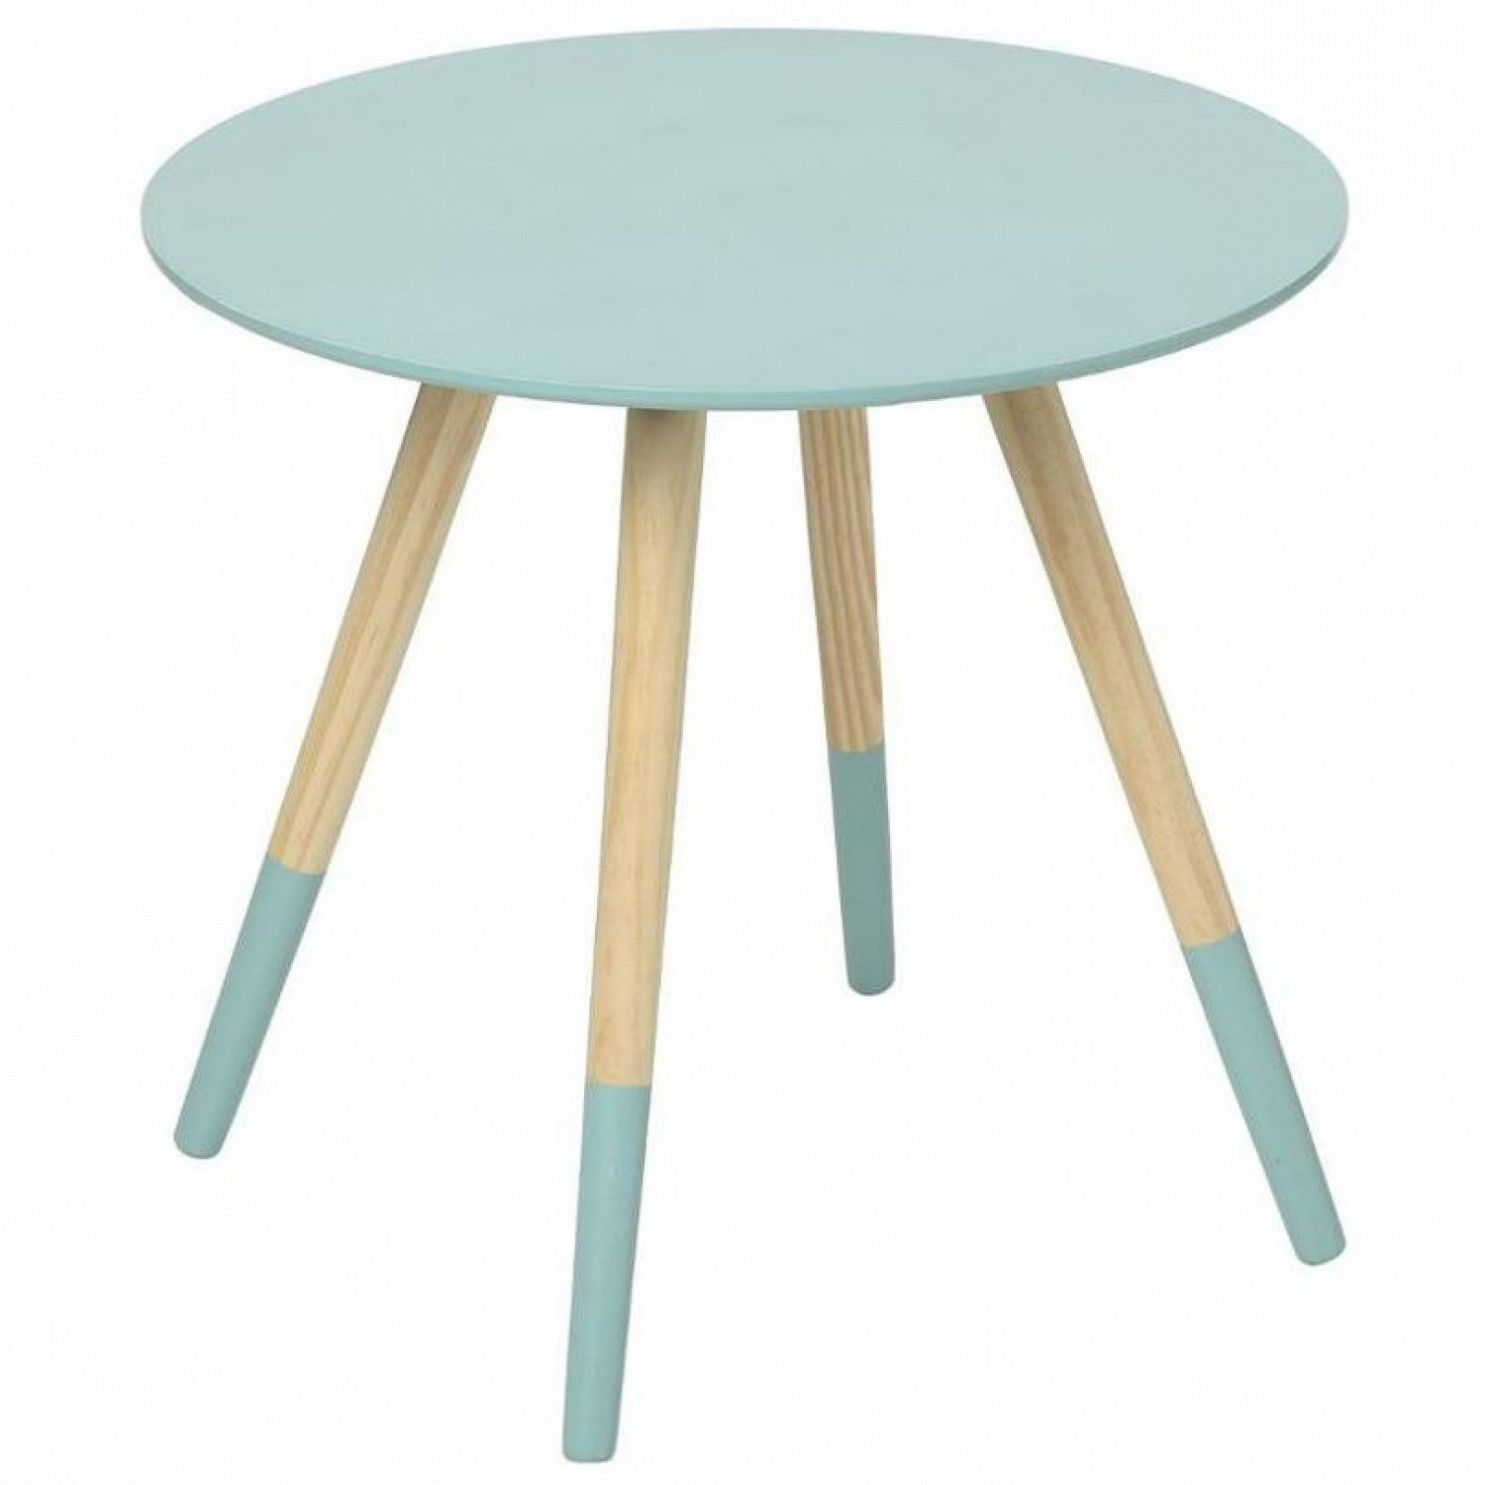 Idee table basse scandinave